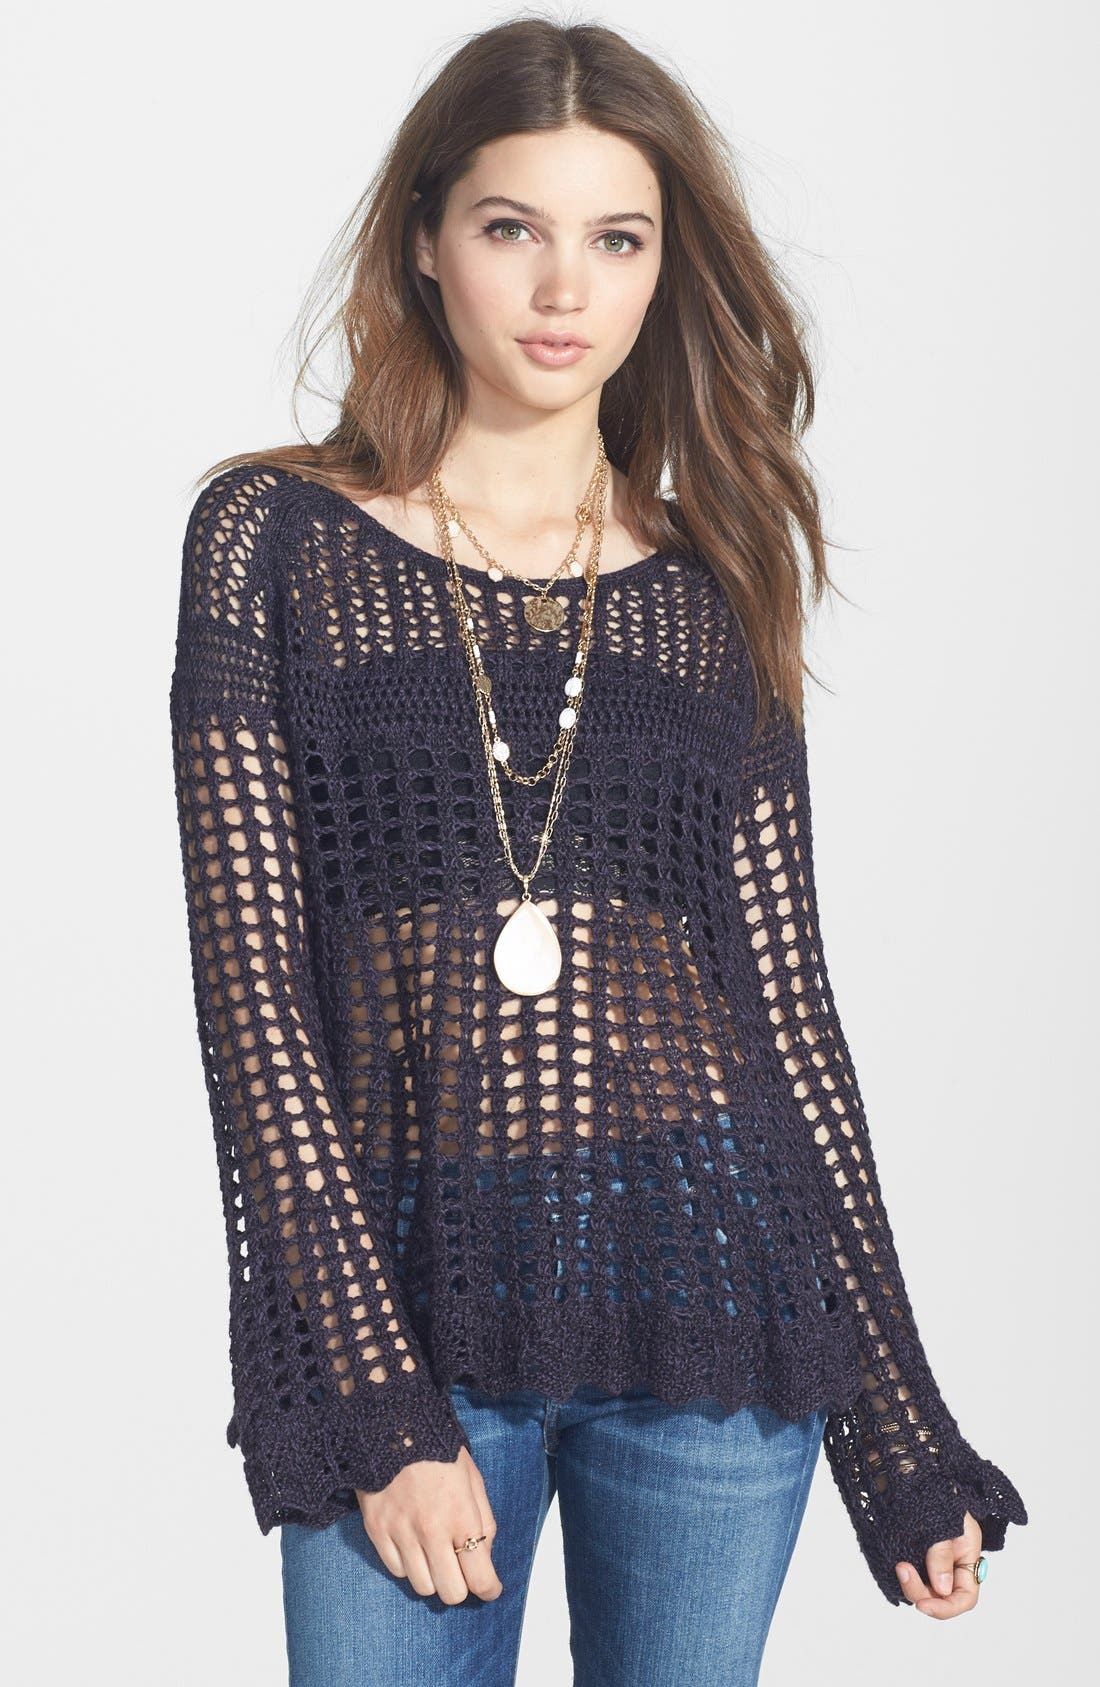 Alternate Image 1 Selected - Free People 'Annabelle' Crocheted Pullover